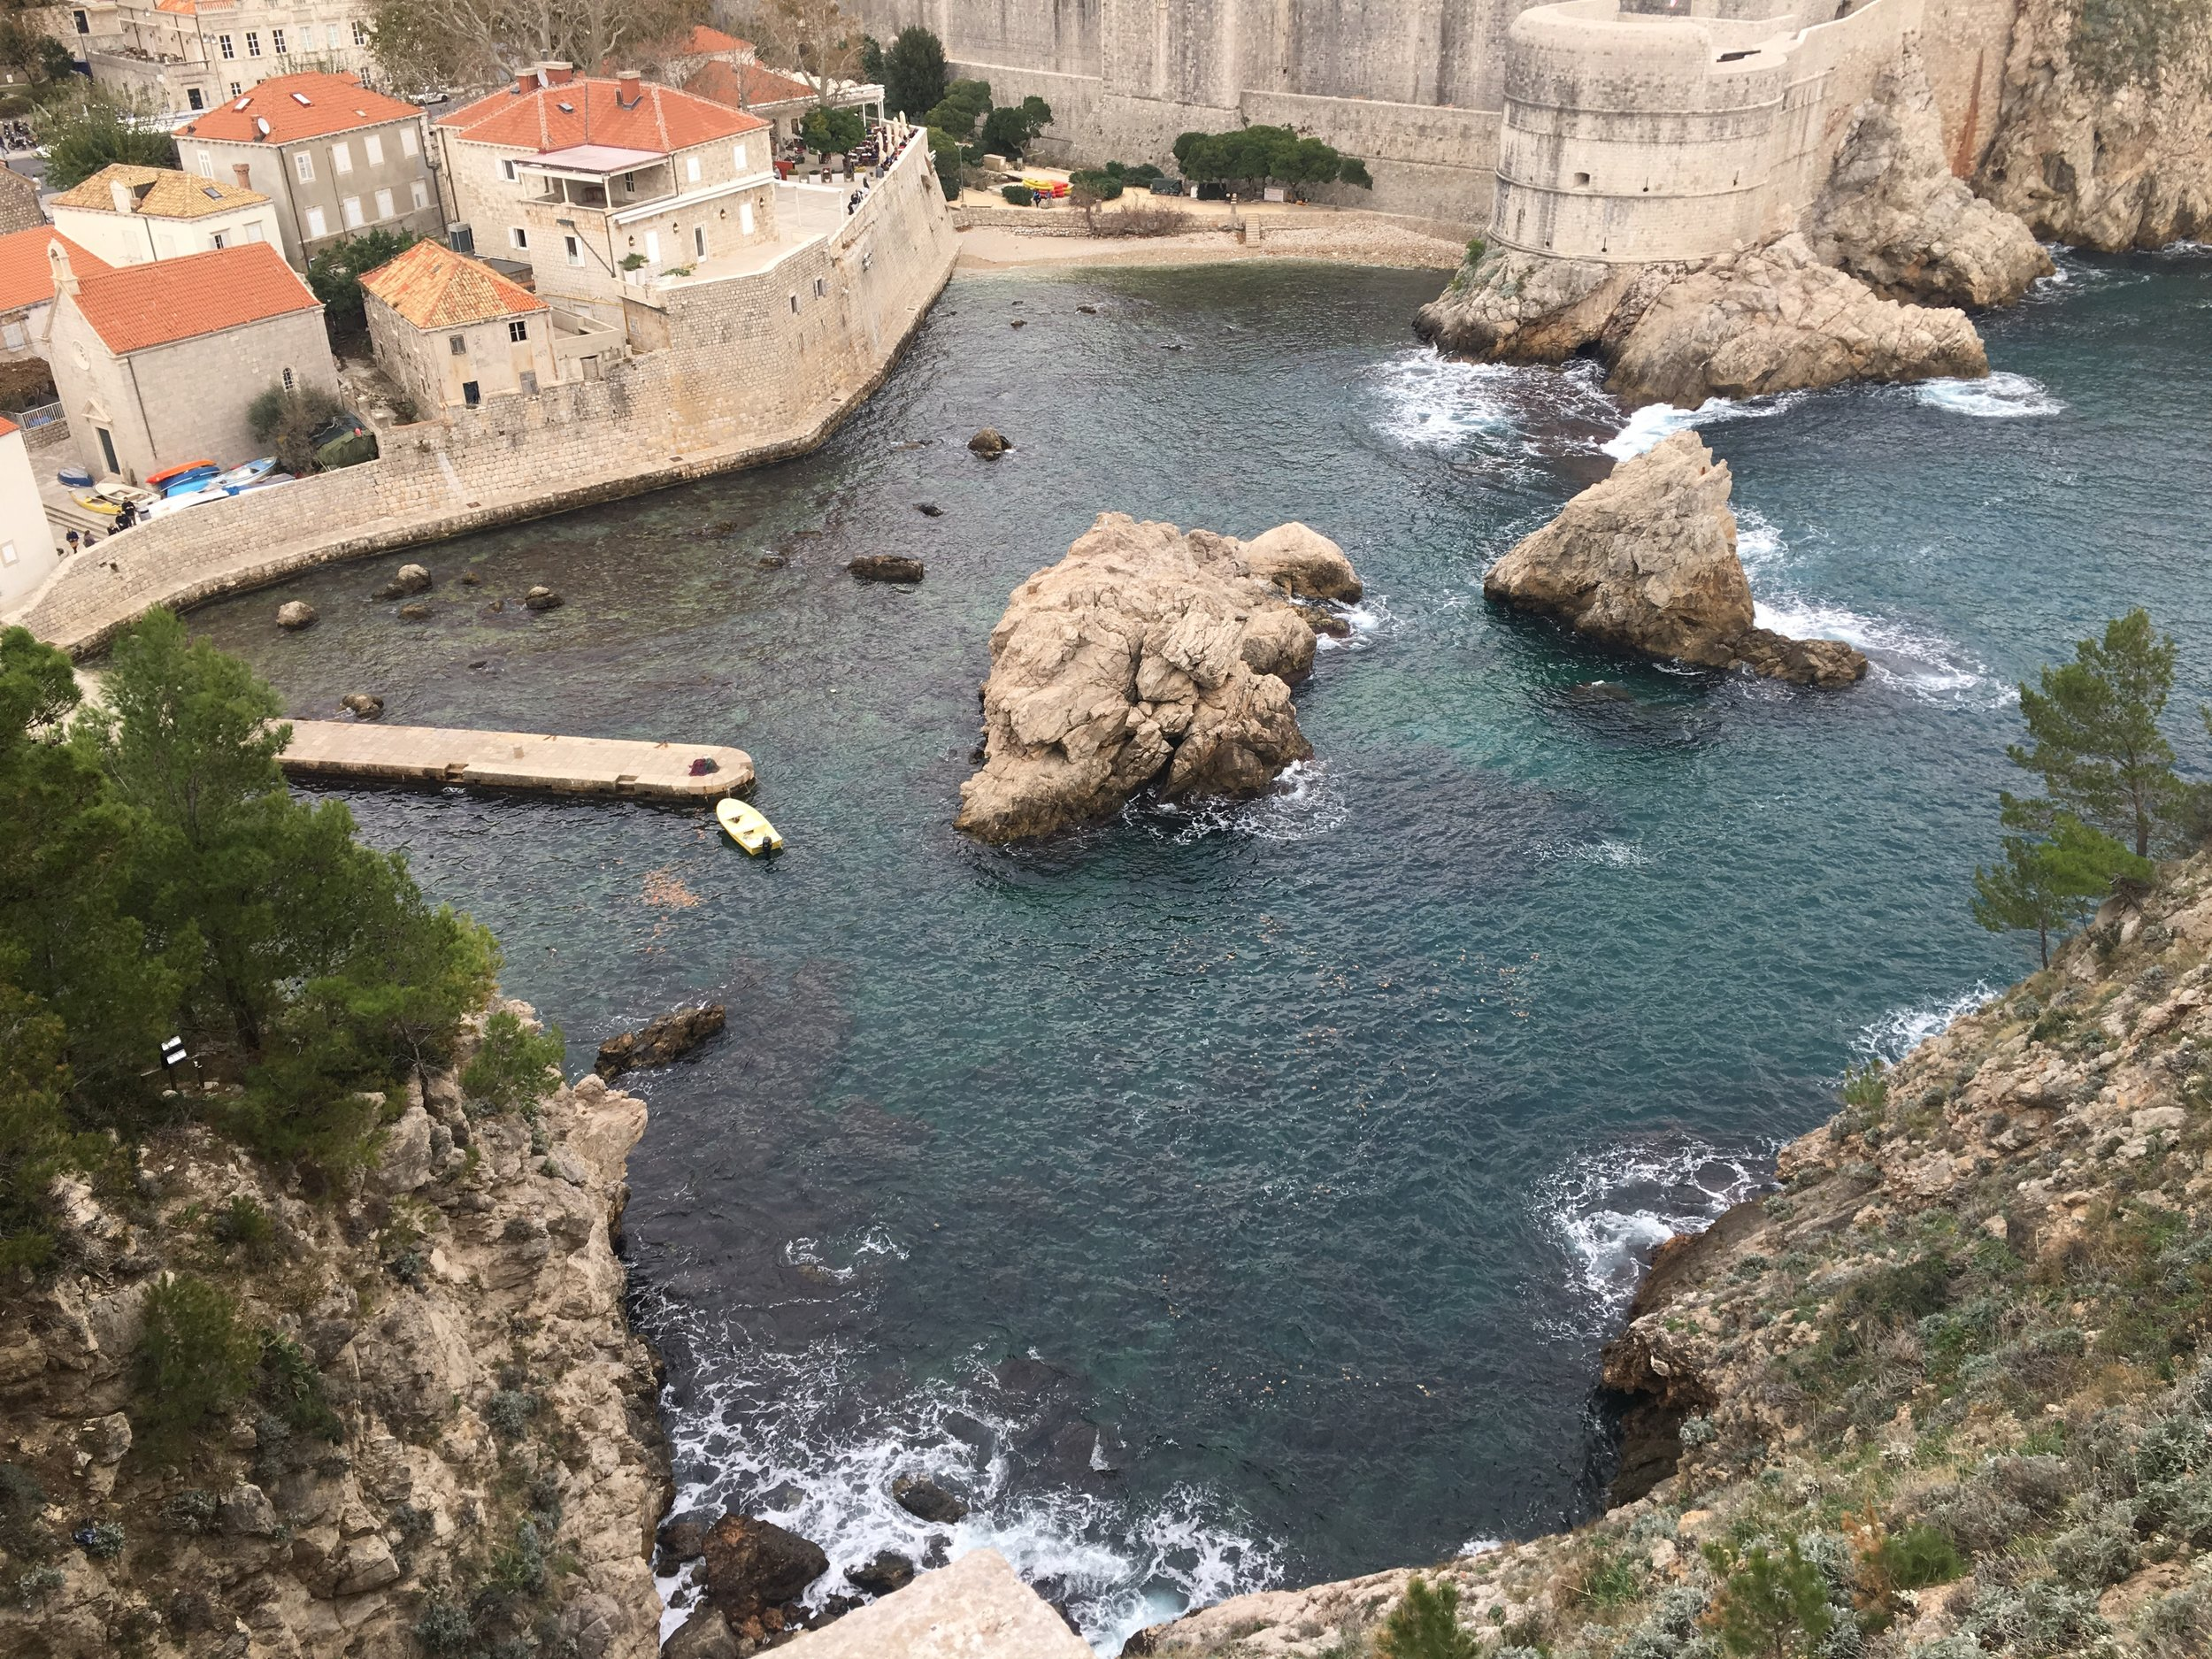 Black Water Bay from Game of Thrones was filmed in Dubrovnik.